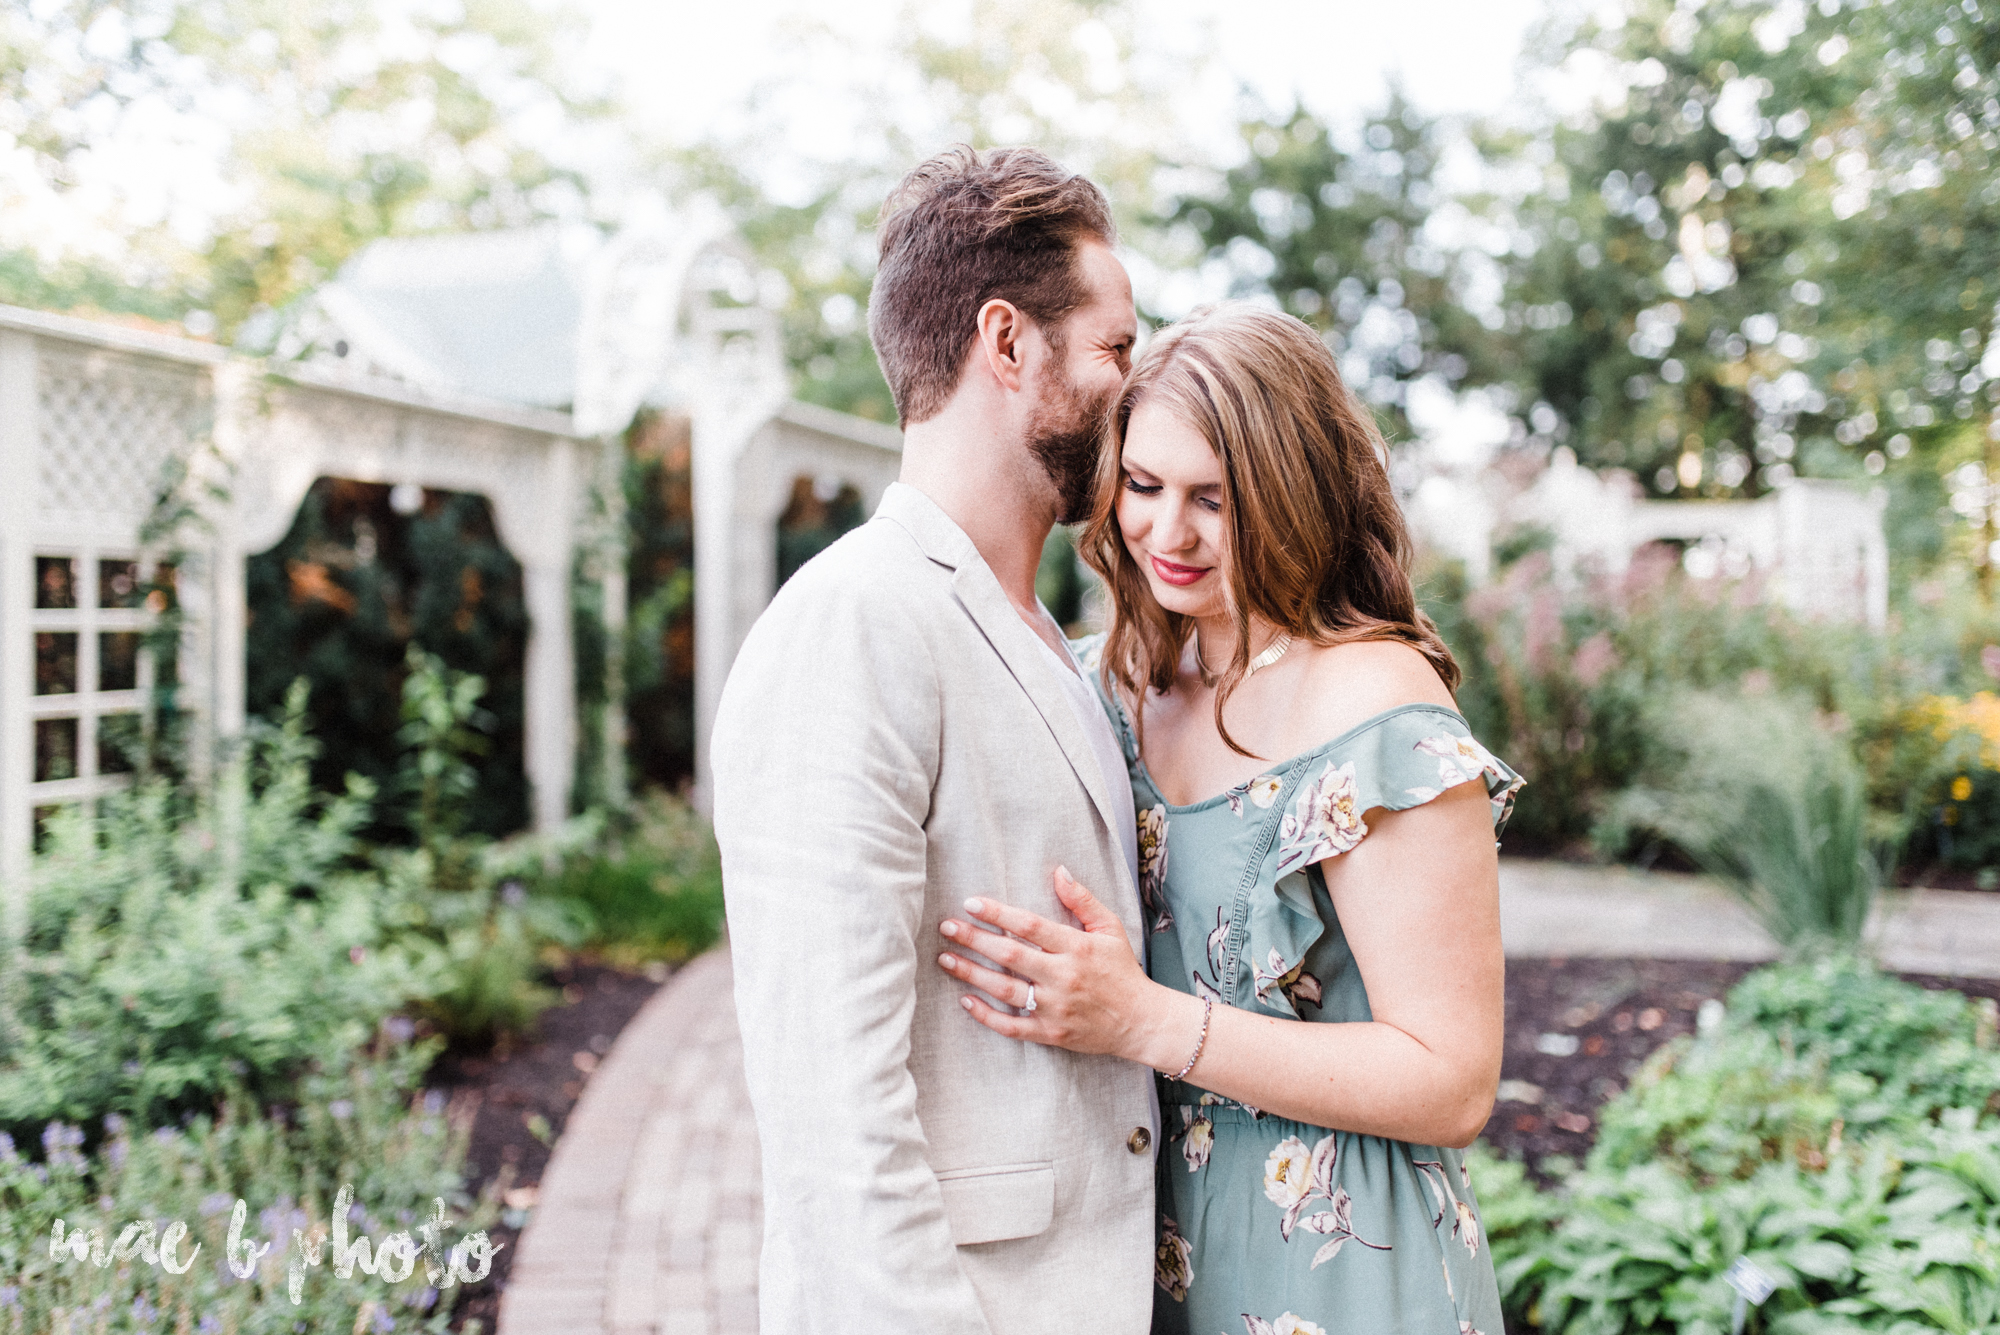 lauren and steve's summer engagement session at the rose gardens and lanterman's mill in mill creek park in youngstown ohio photographed by youngstown wedding photographer mae b photo-2.jpg